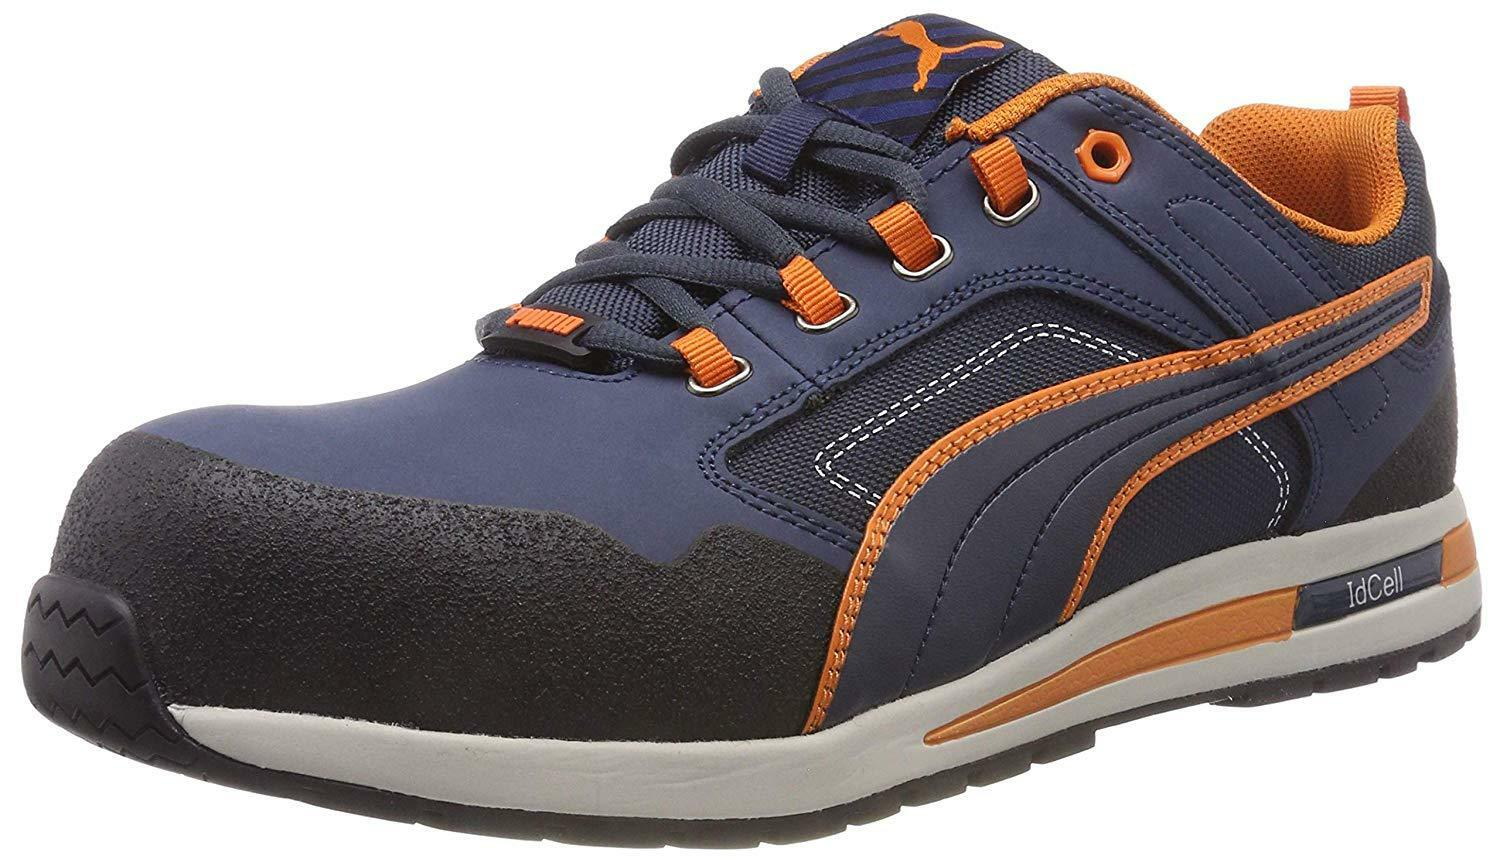 Puma 643100.39 Crossfit shoes Safety S3 Accident Prevention Safety